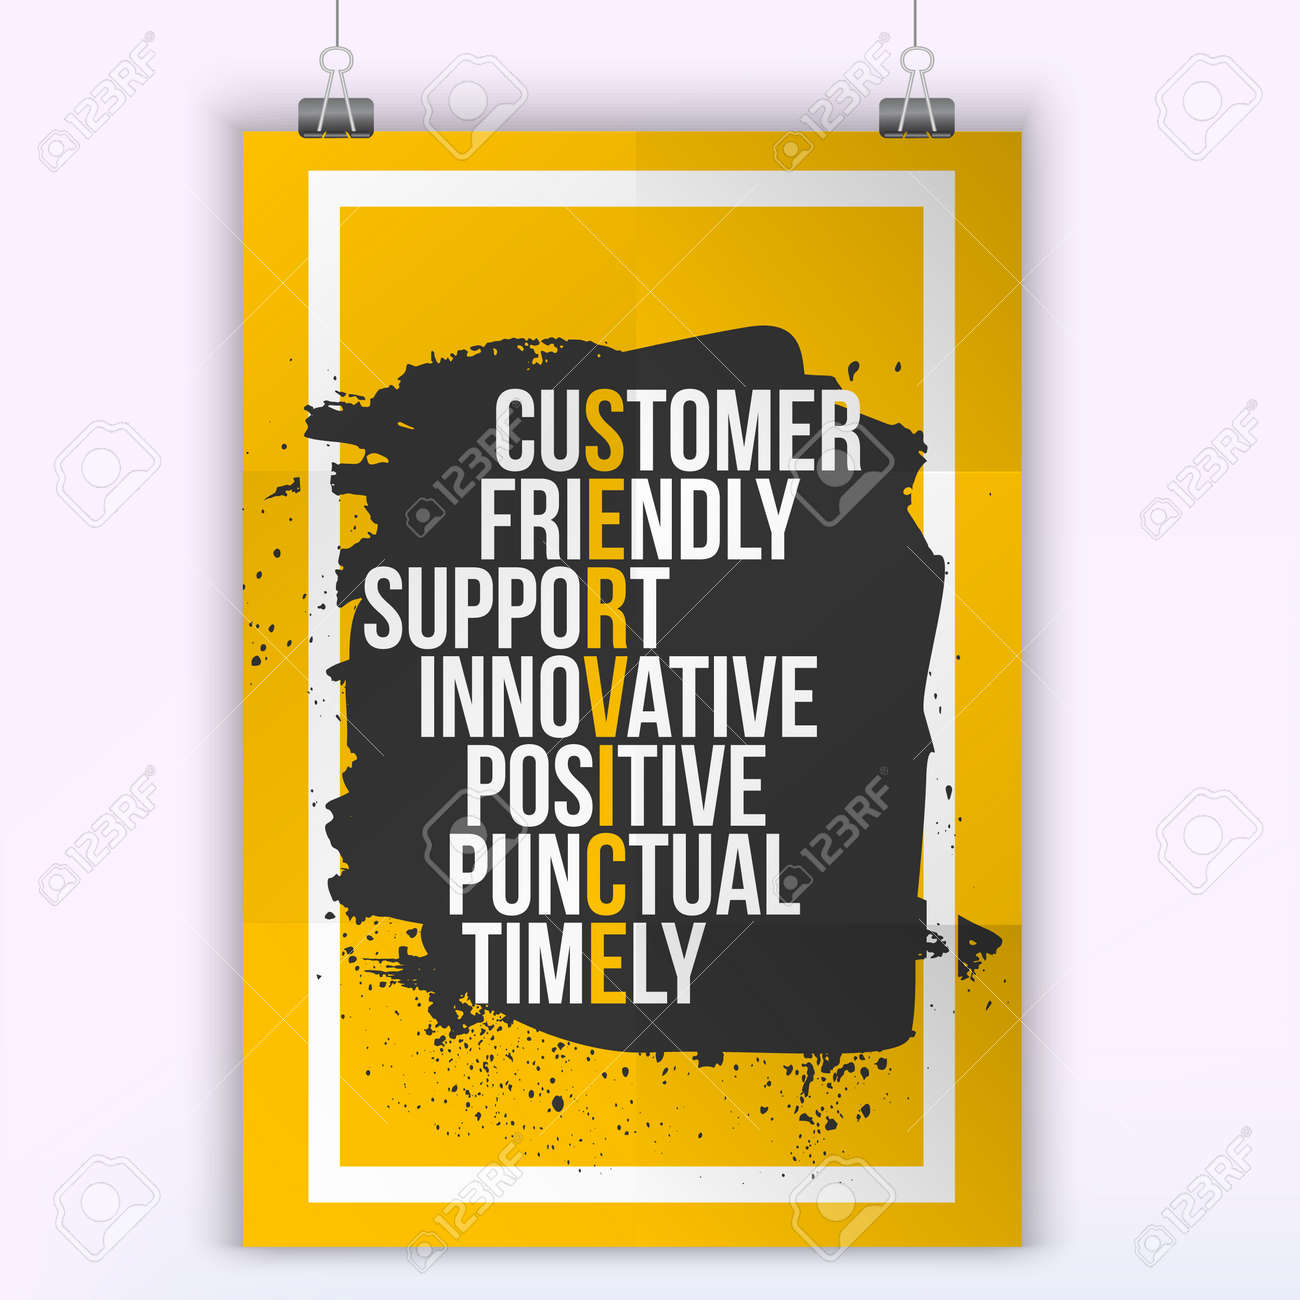 Service Quotes Customer Service Quote On Grunge Stainmock Up For Quotesa4